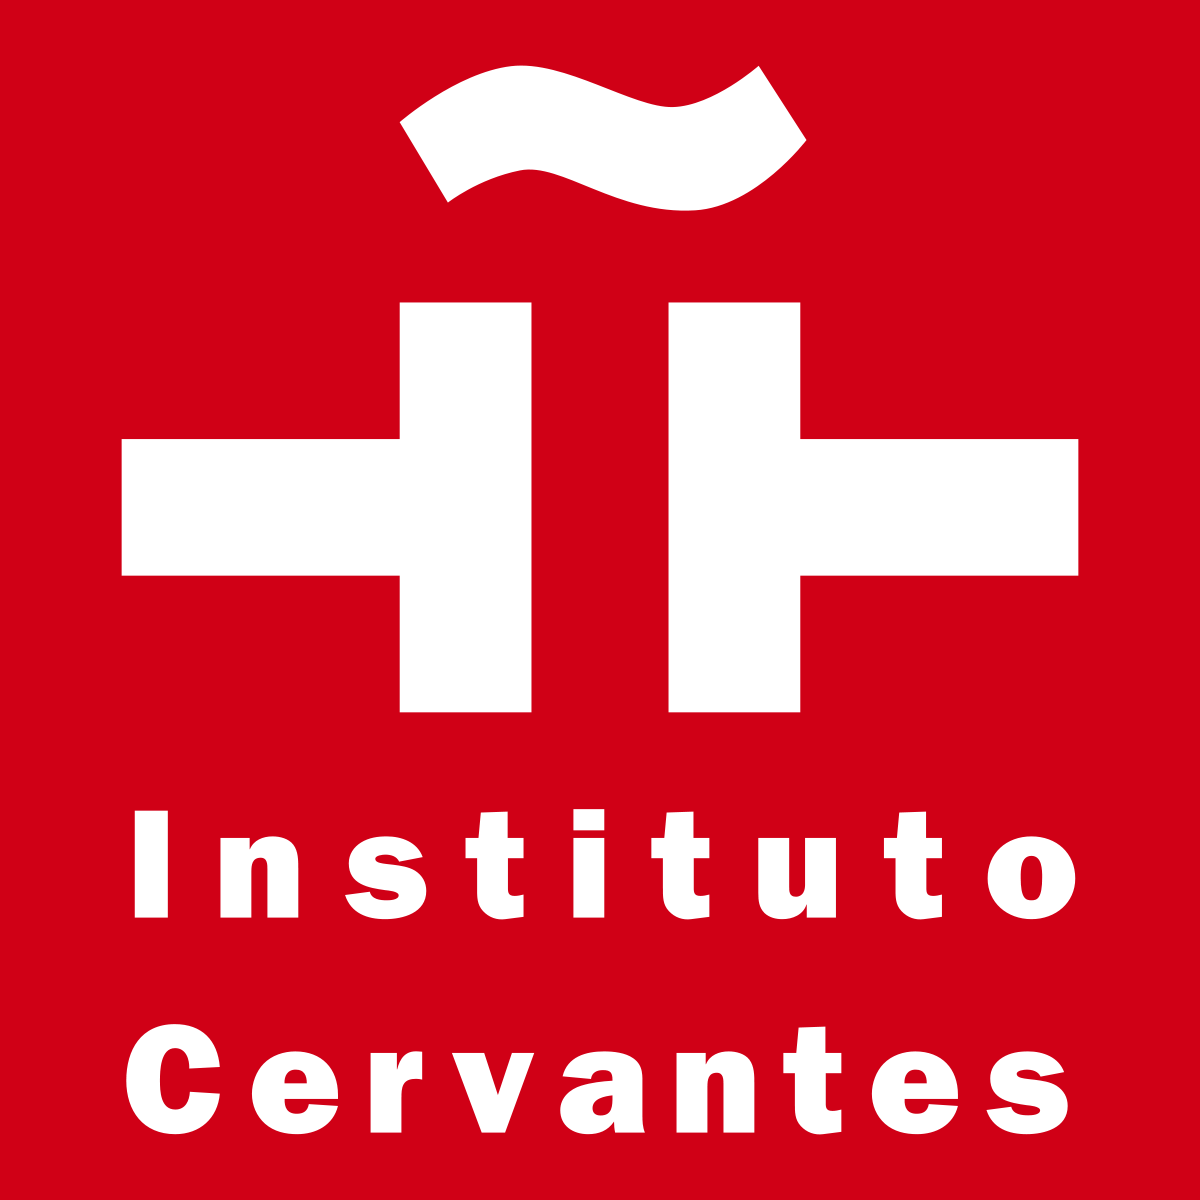 logo instituto cervantes 2019